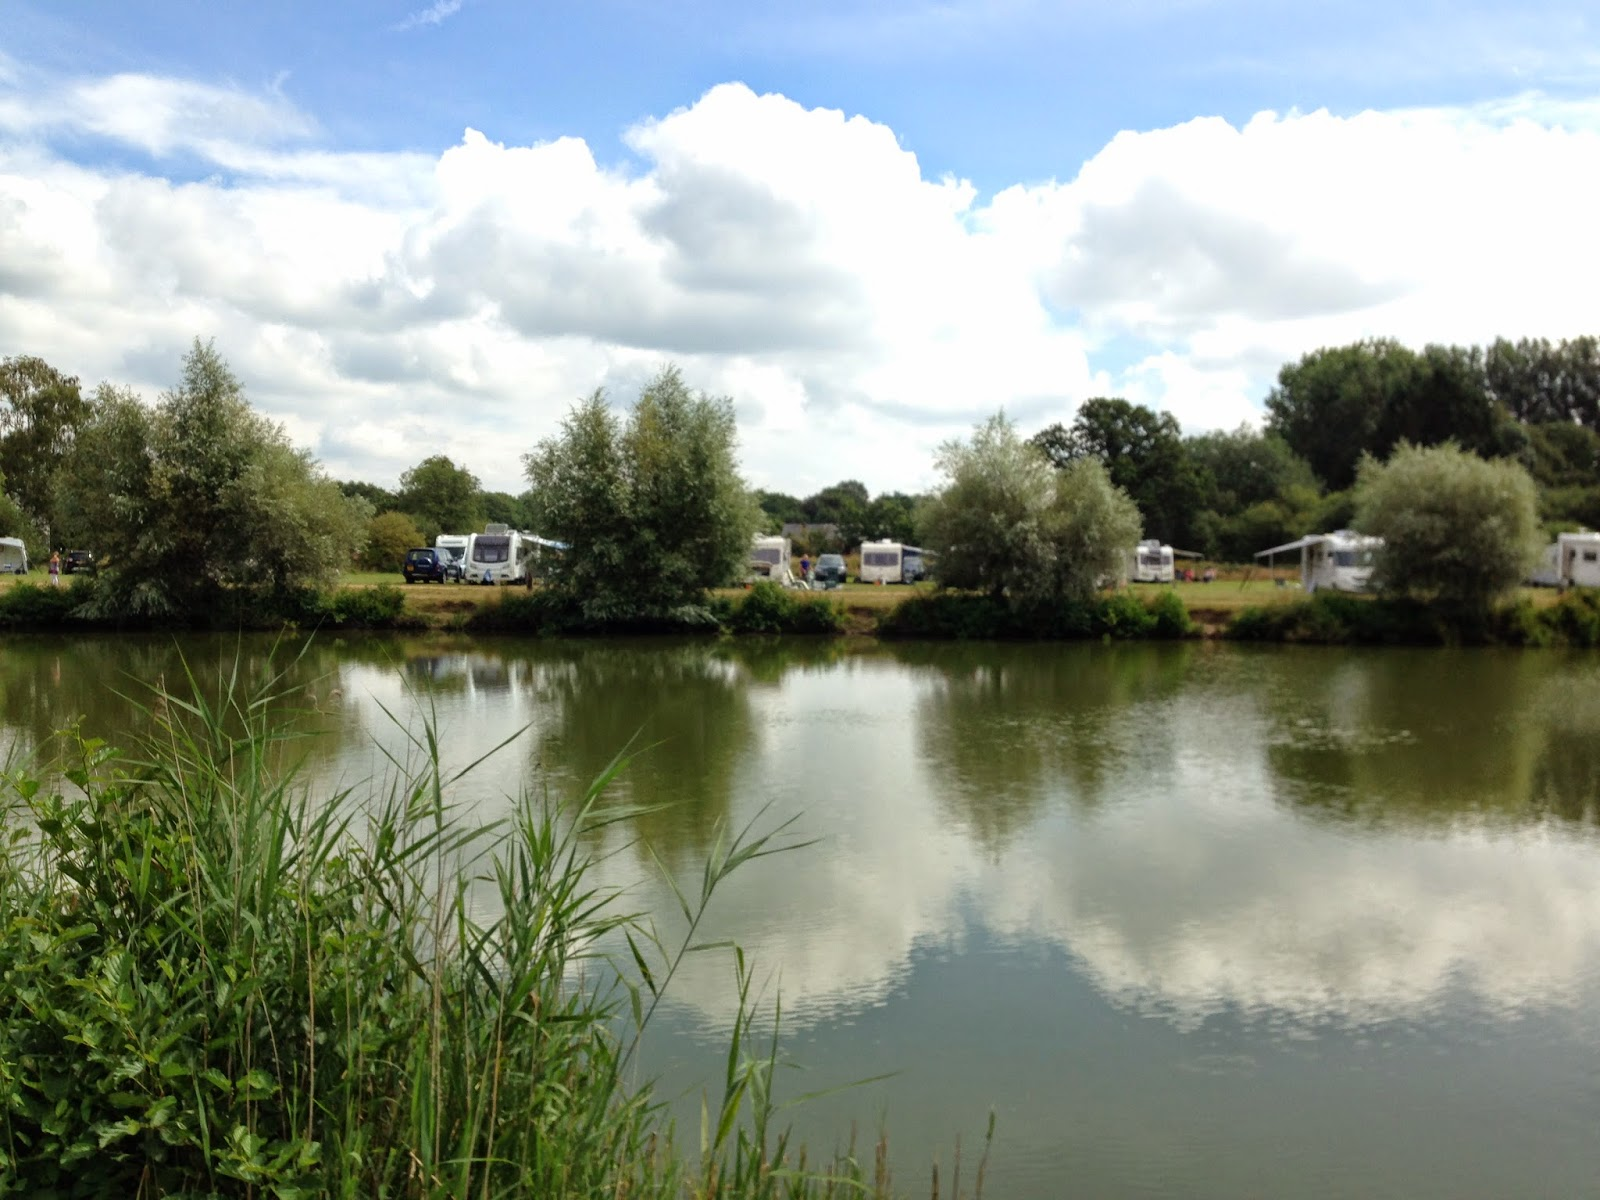 A view of caravans across Somerley Lakes